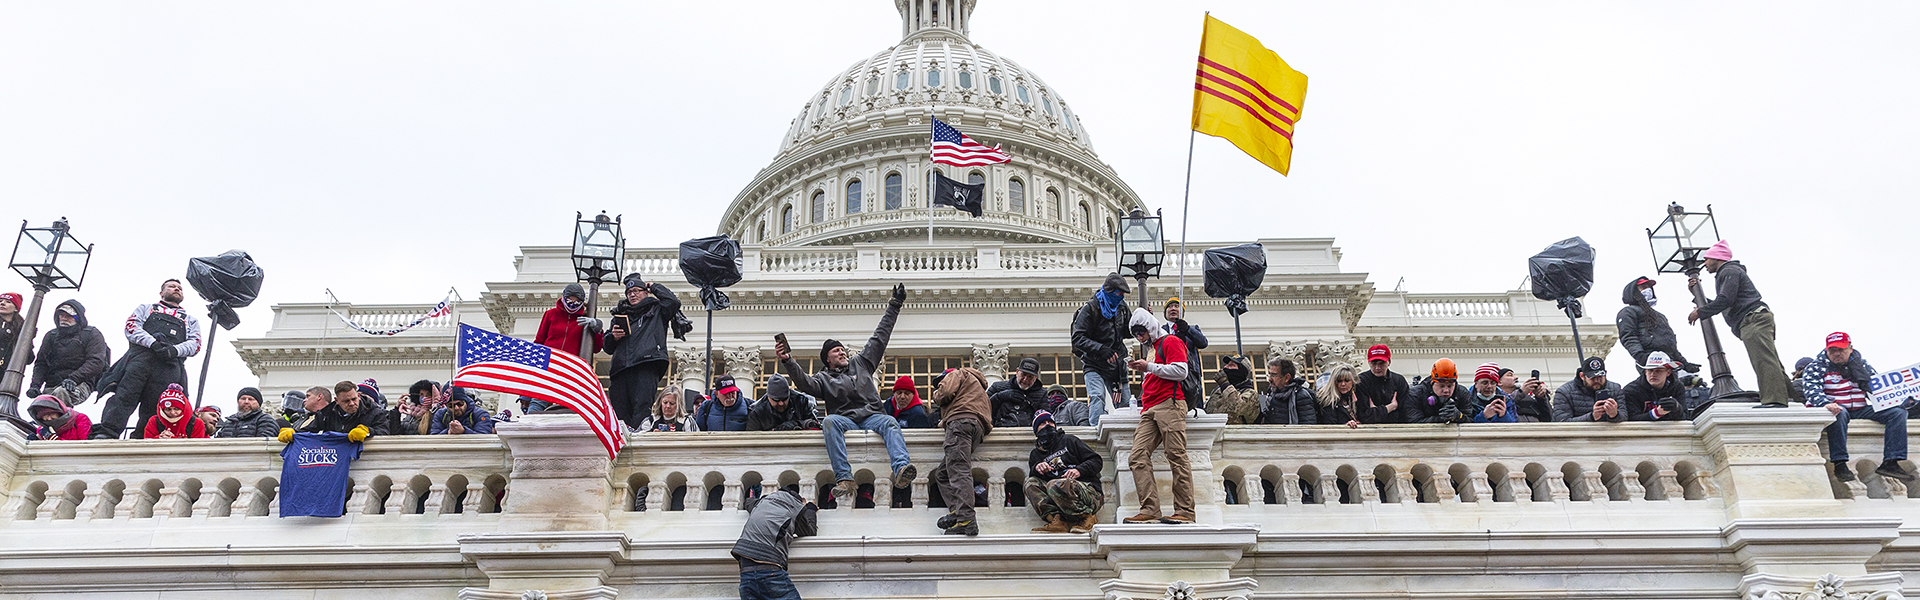 Trump supporters storming the U.S. Capitol on Jan. 6, 2021